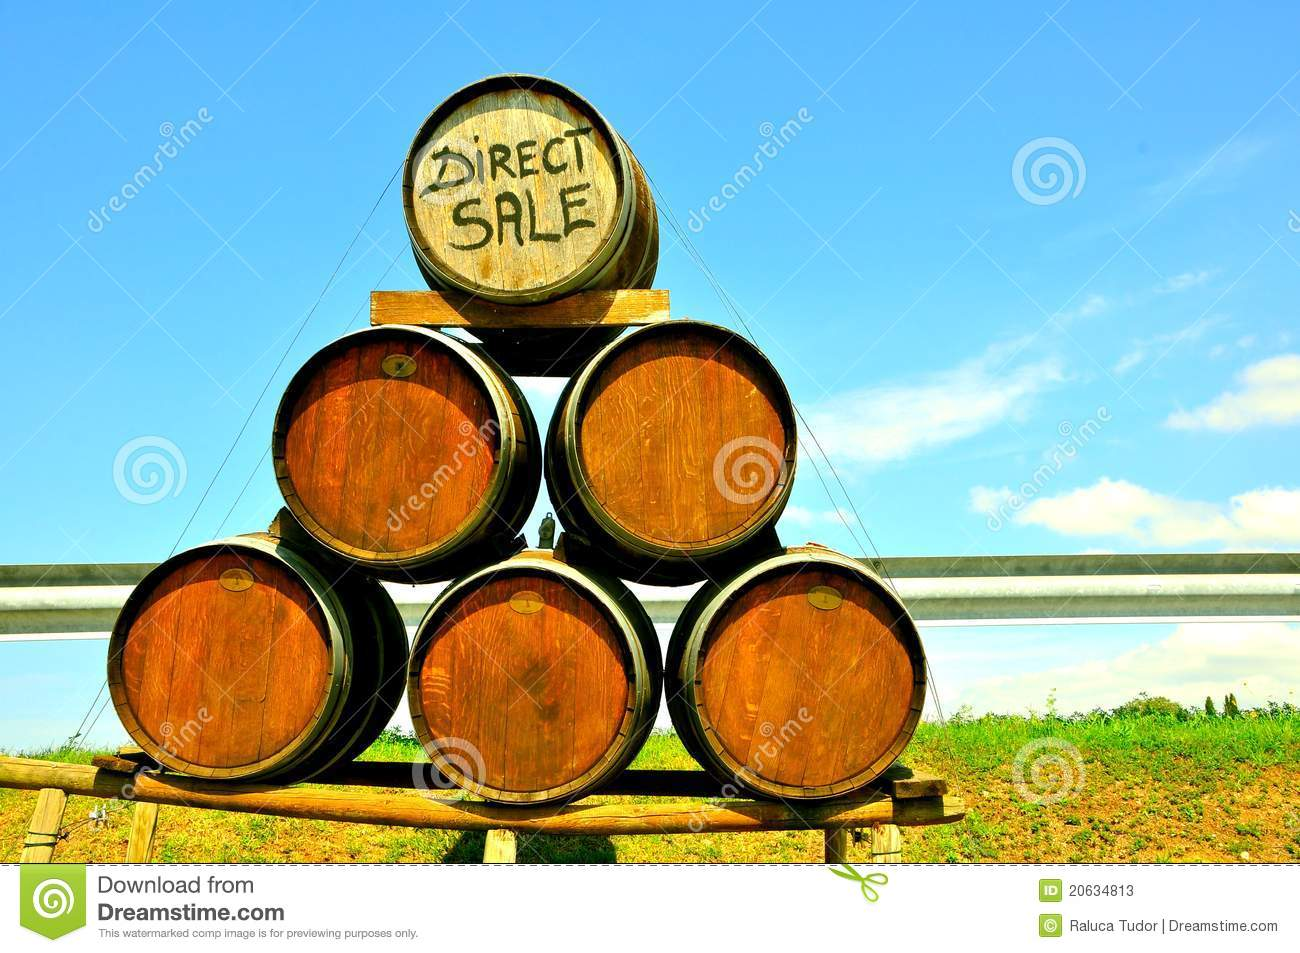 Wine direct sale in Italy